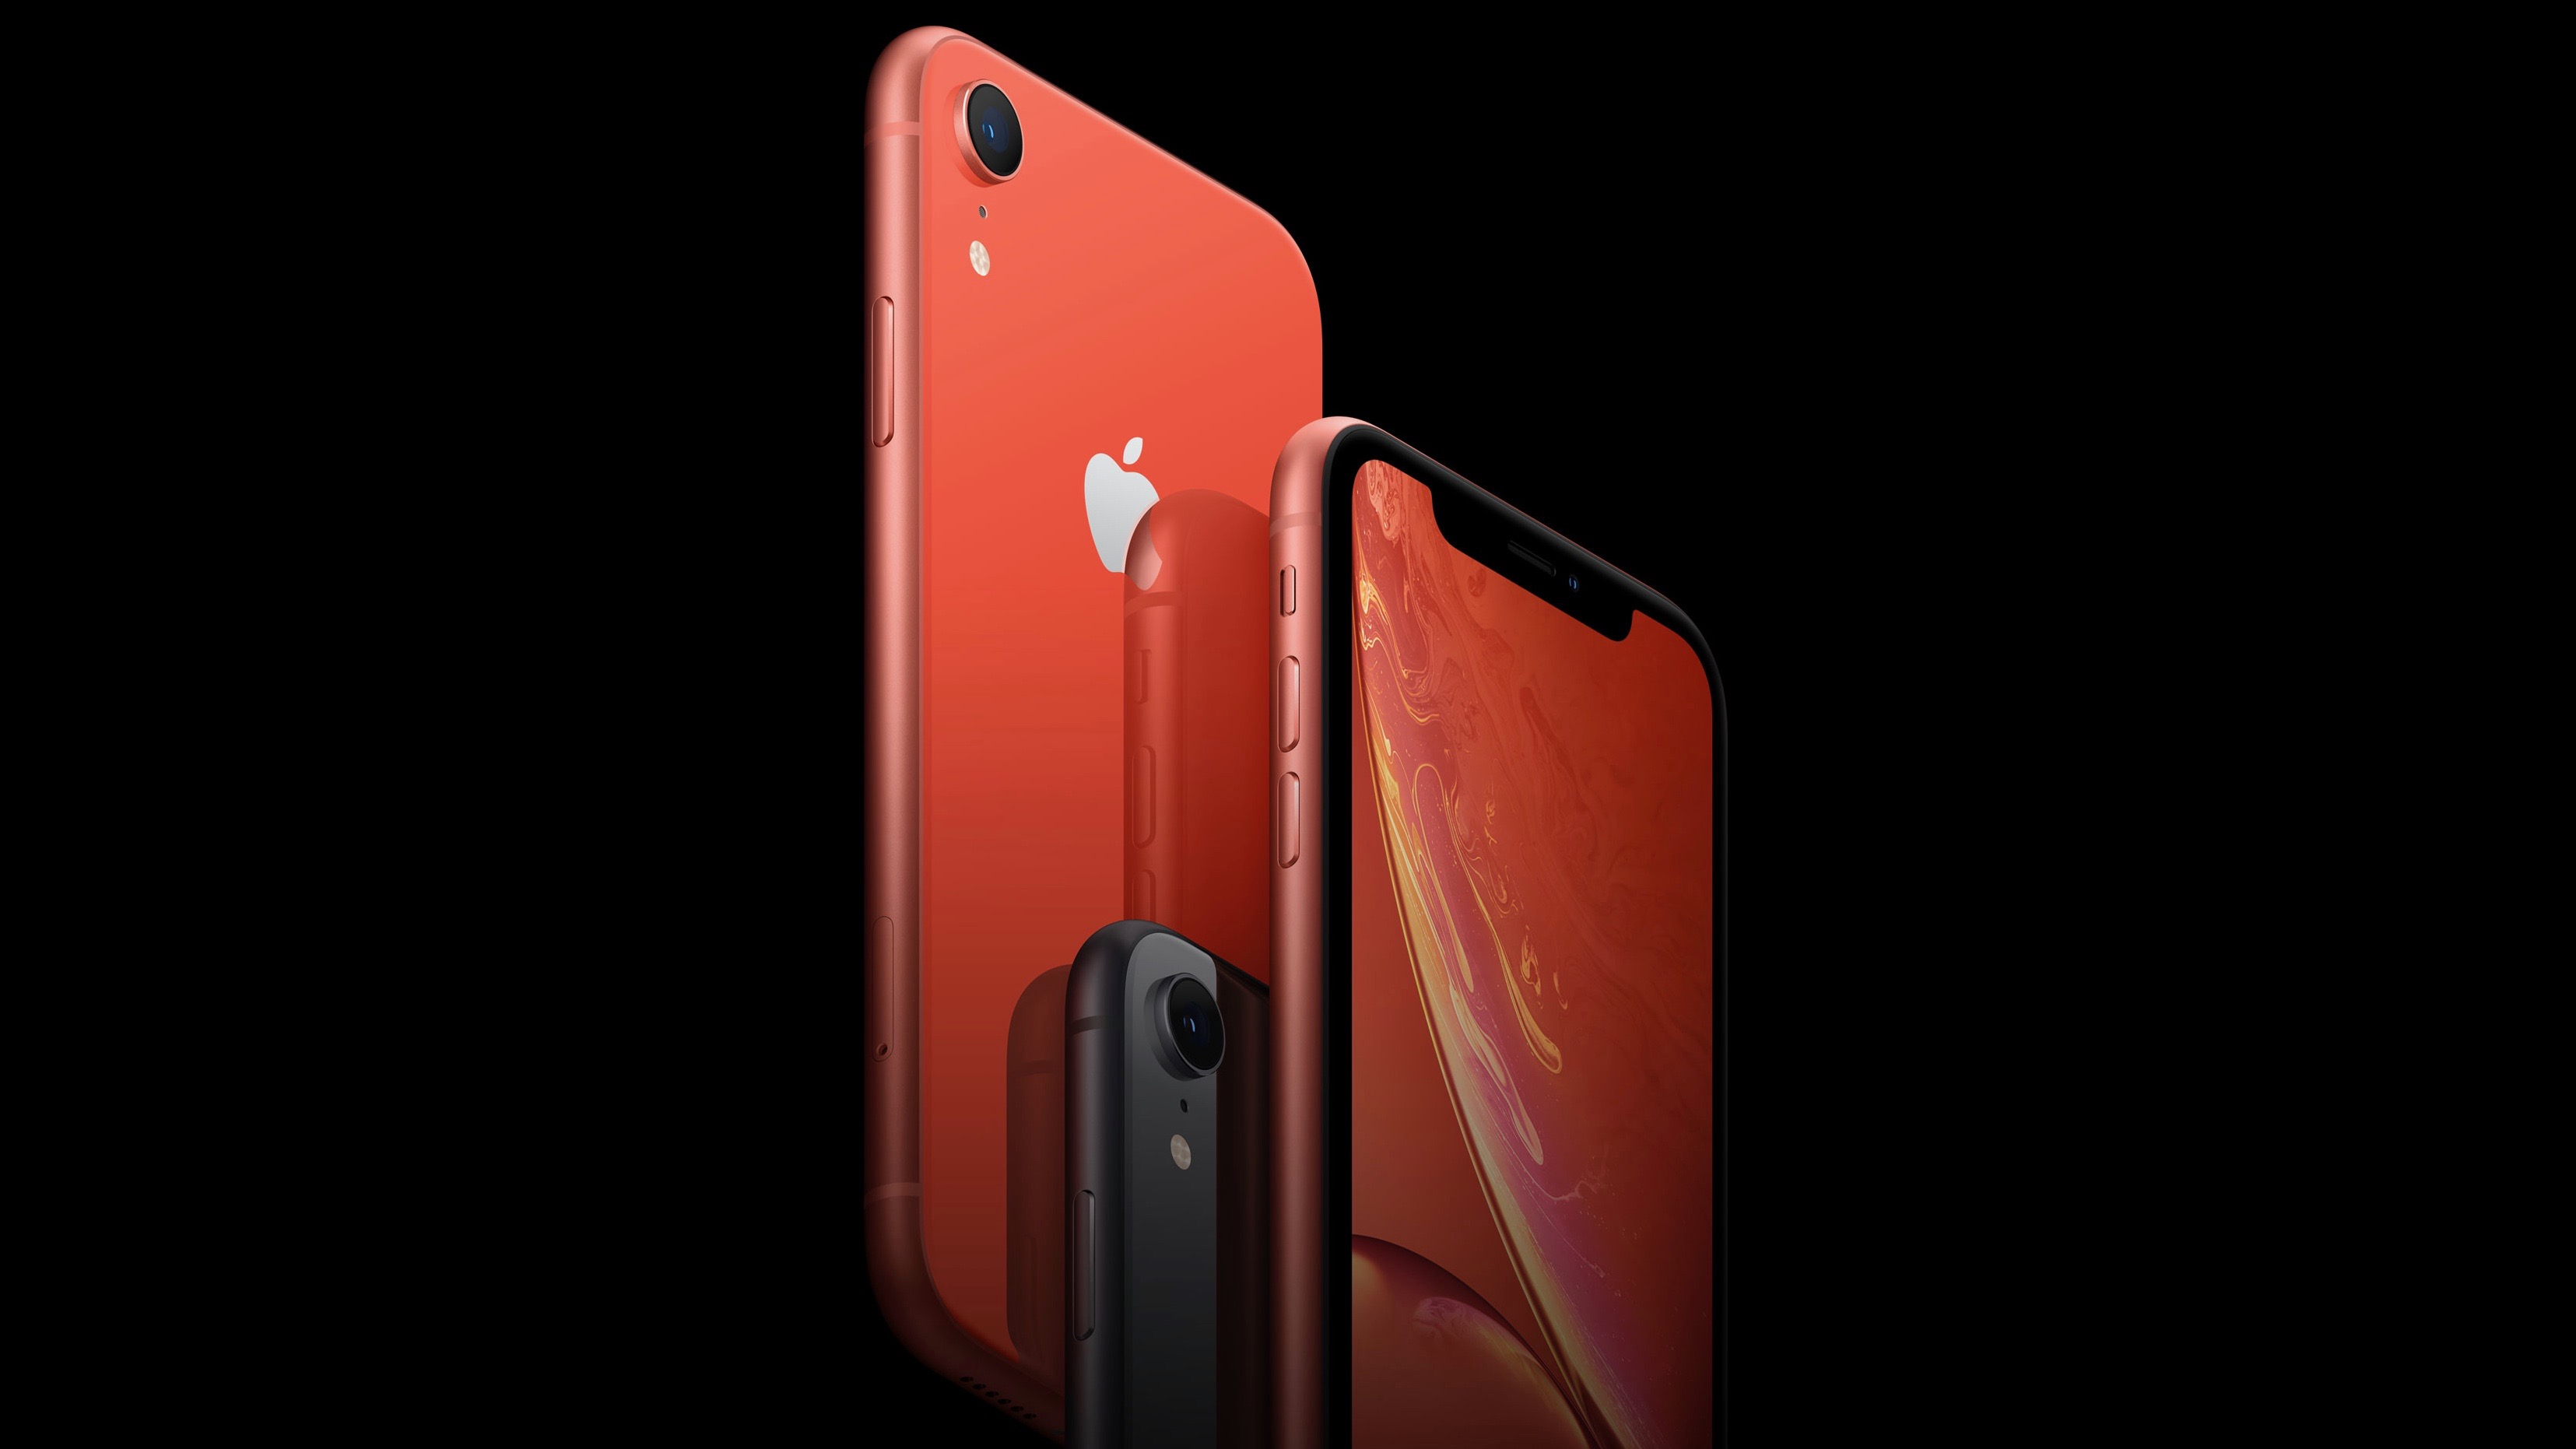 Download The Iphone Xr Wallpapers Here Gallery 9to5mac